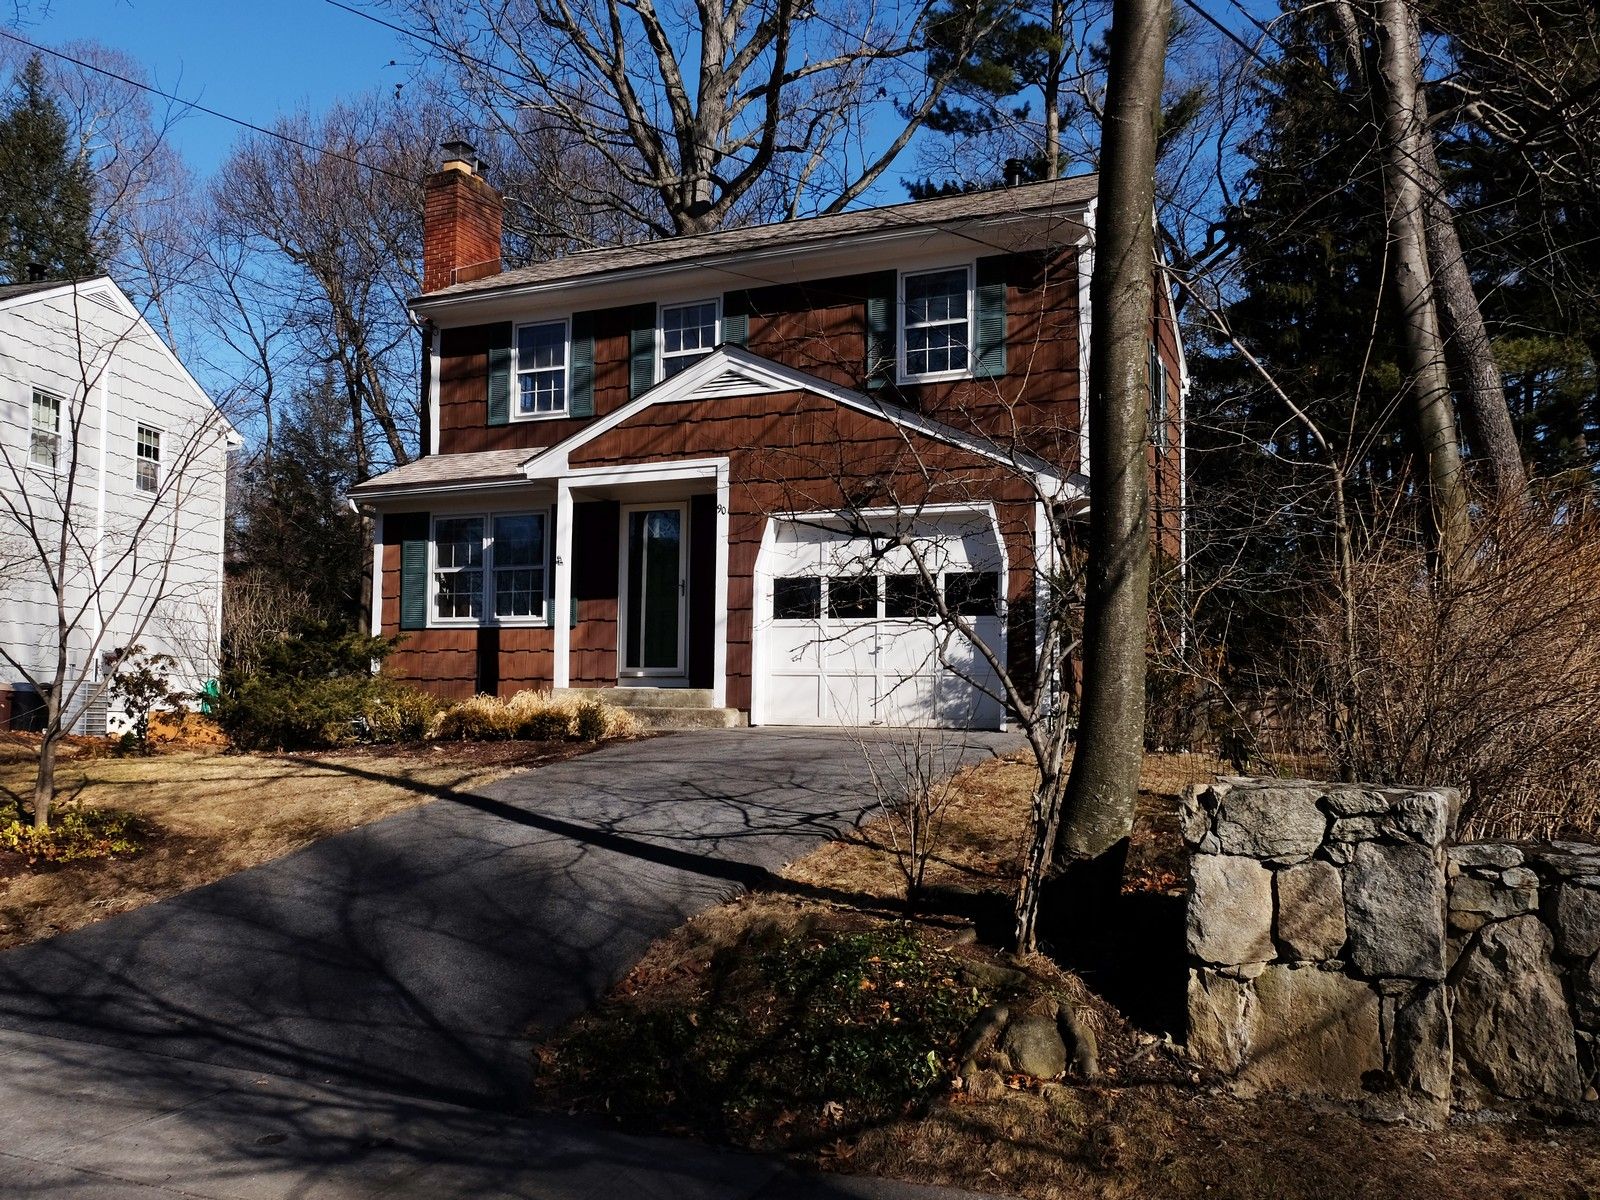 Single Family Home for Sale at Village Colonial 90 Lexington Drive Croton On Hudson, New York 10520 United States